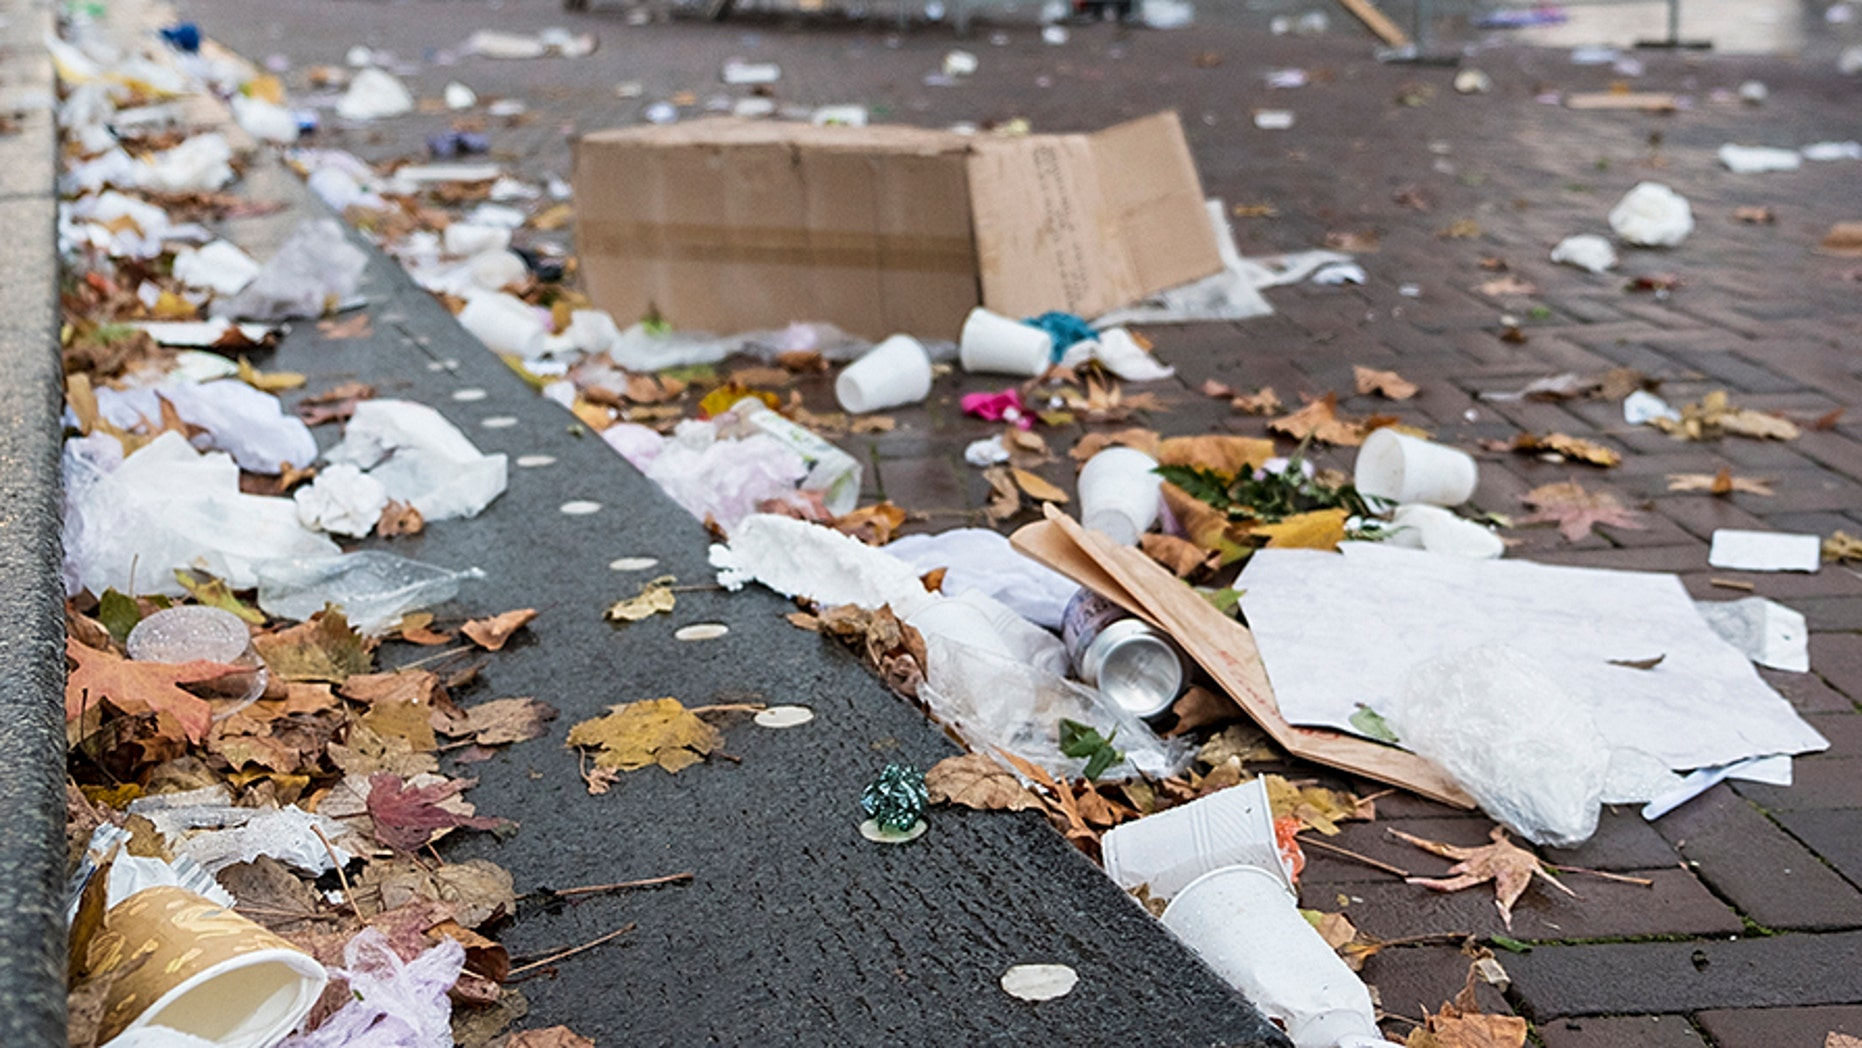 The city of San Diego began a paid program to have the homeless clean up trash.